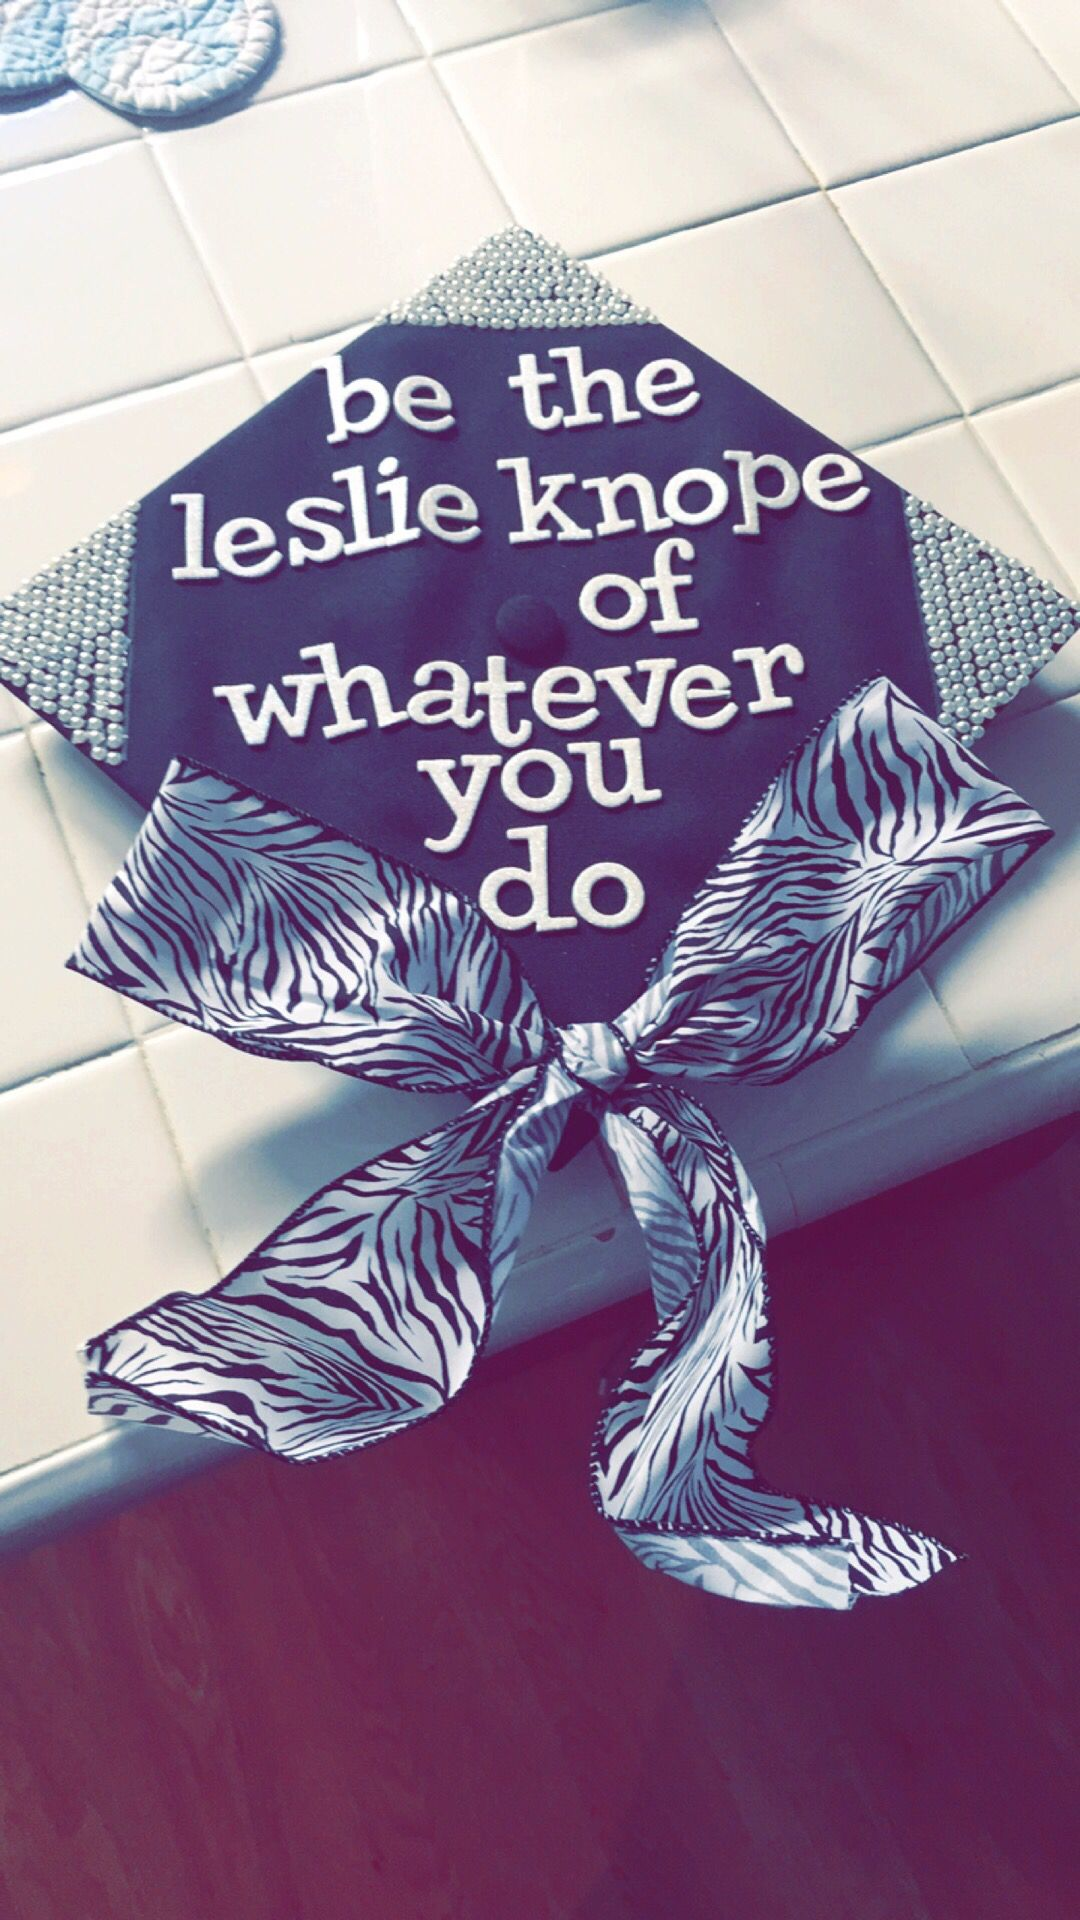 46a343a66ea18 My Parks and recreation graduation cap. Leslie knope of parks and ...